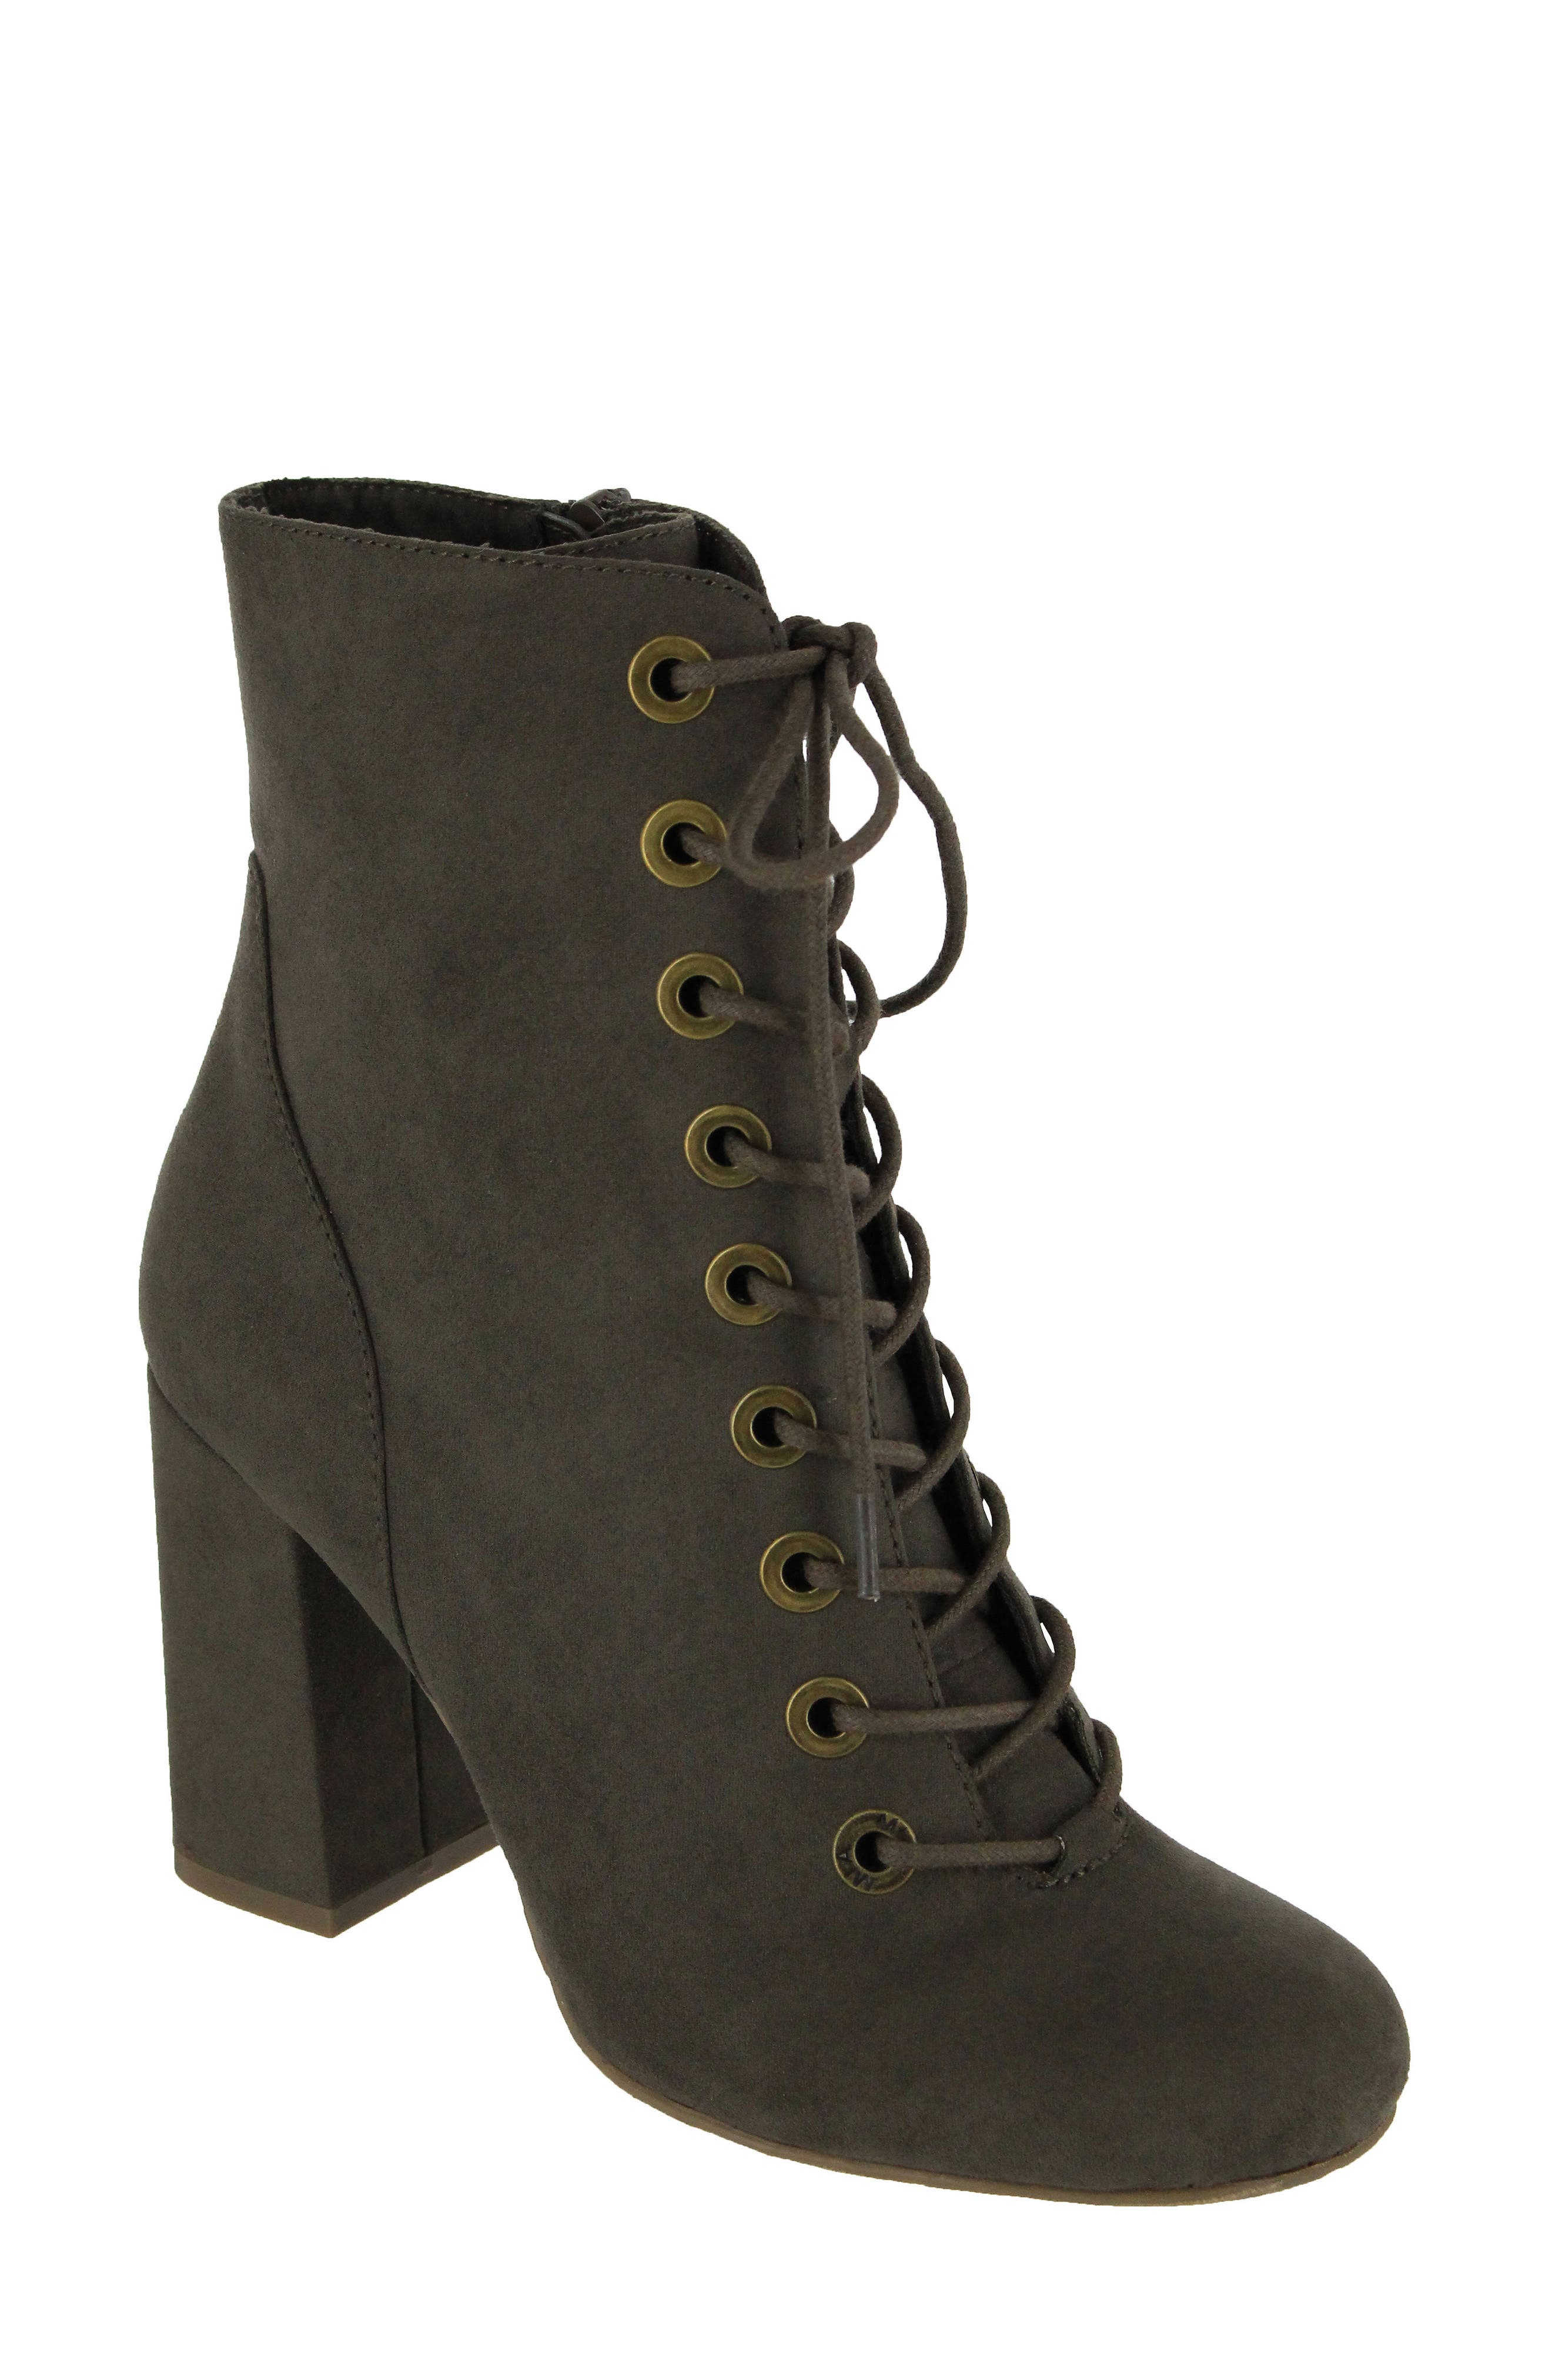 Alternate Image 1 Selected - MIA Janie Lace-Up Bootie (Women)